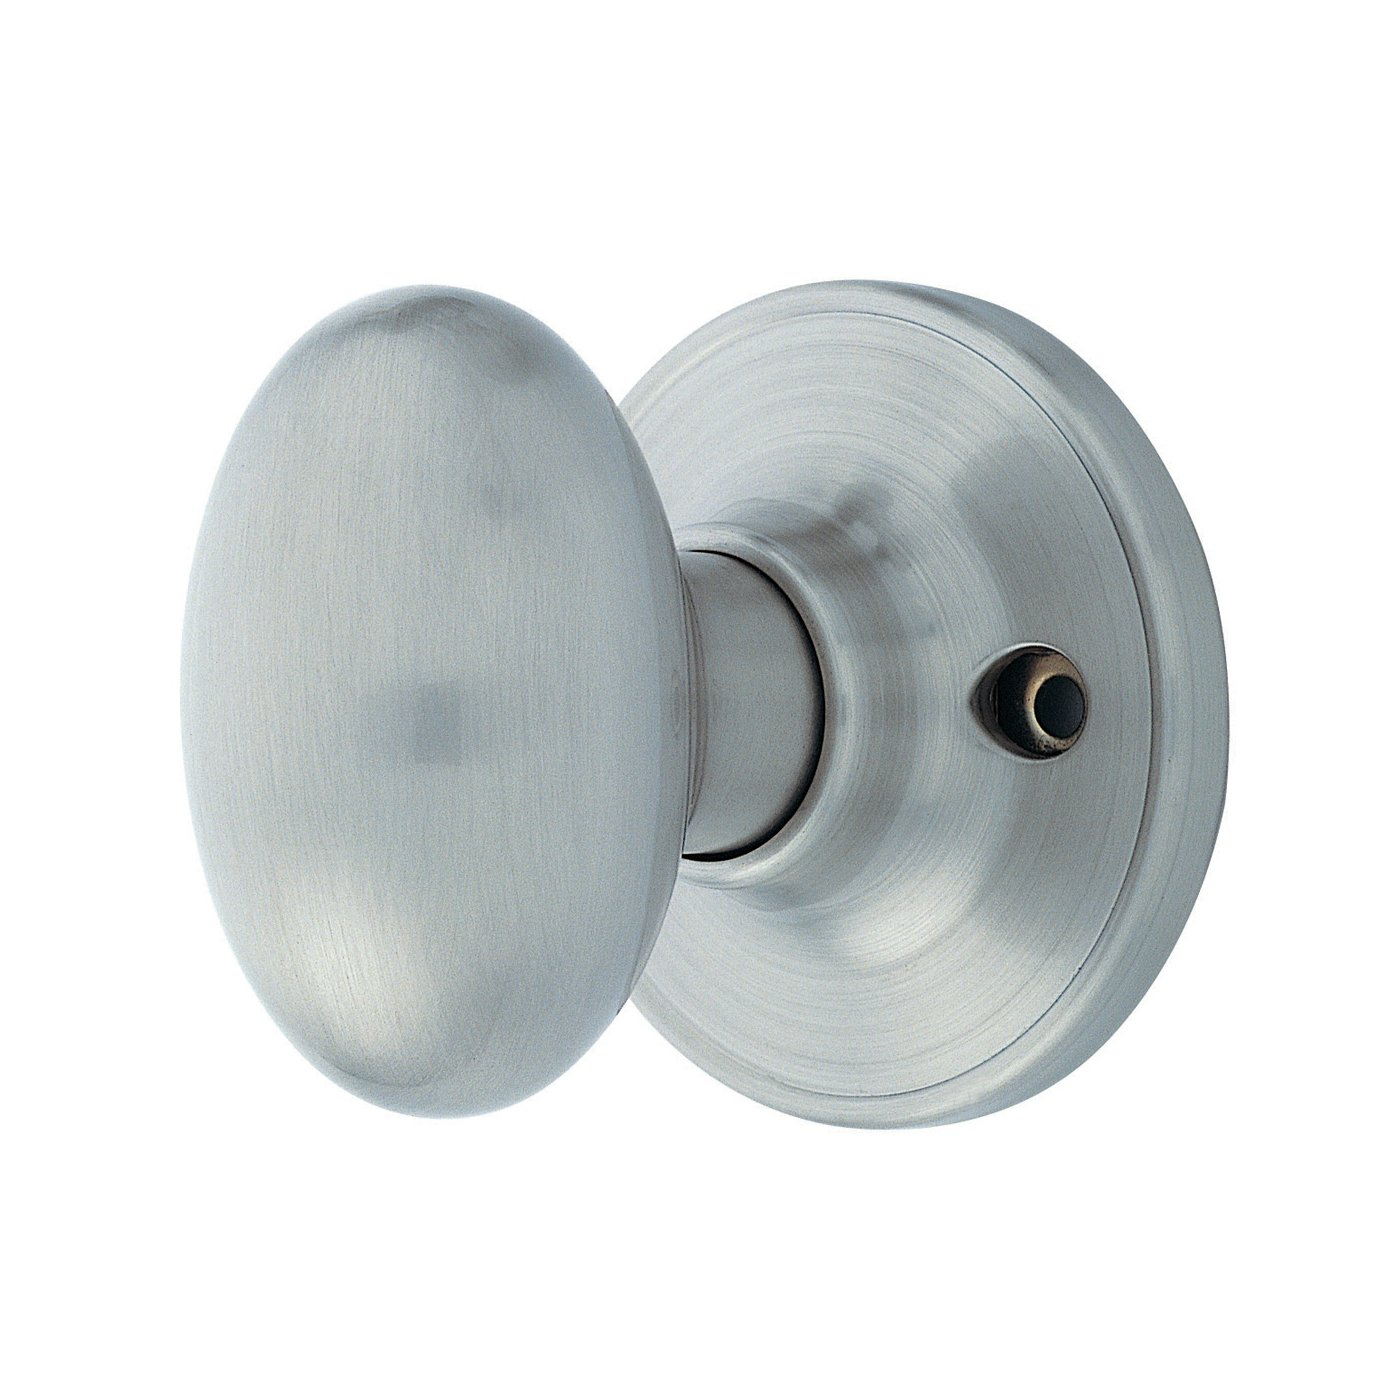 internal door knobs and handles photo - 6